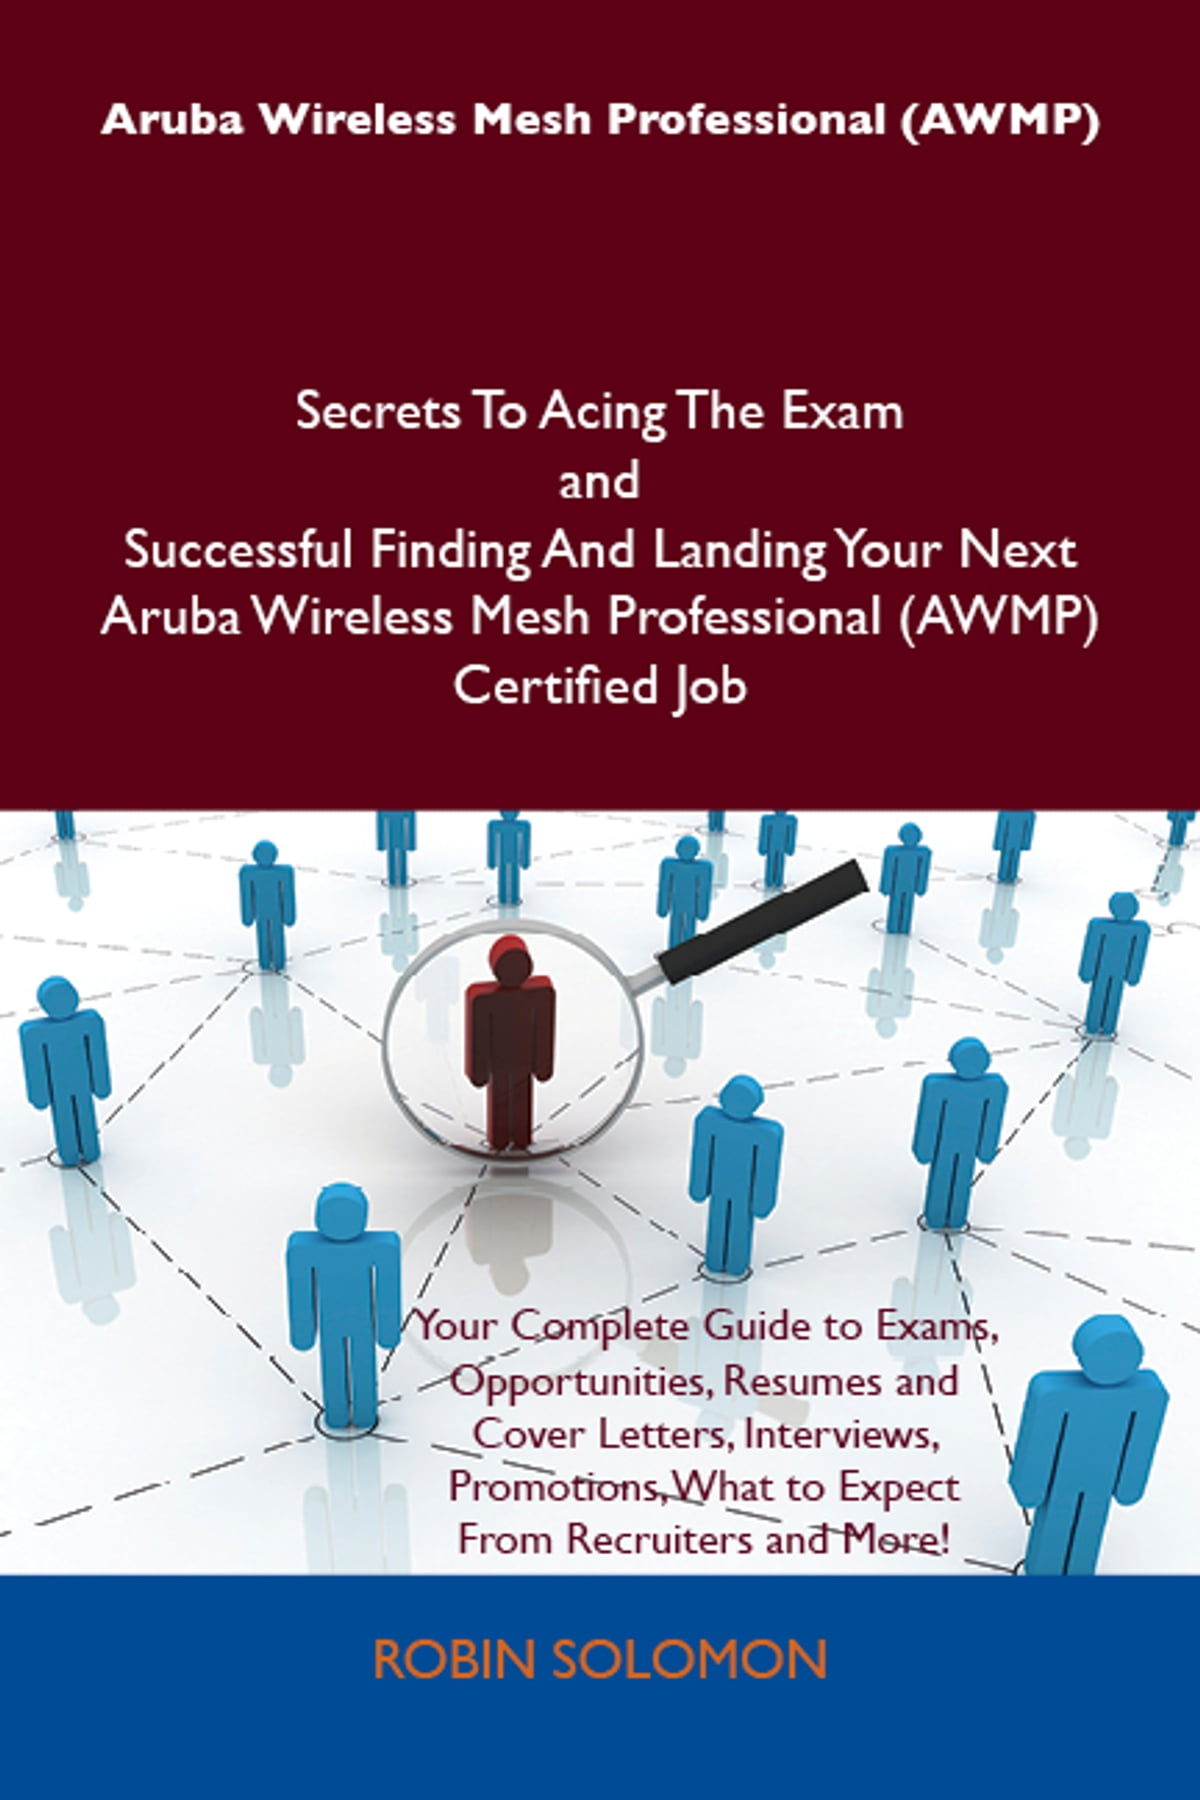 Aruba Wireless Mesh Professional (AWMP) Secrets To Acing The Exam and  Successful Finding And Landing Your Next Aruba Wireless Mesh Professional  (AWMP) ...